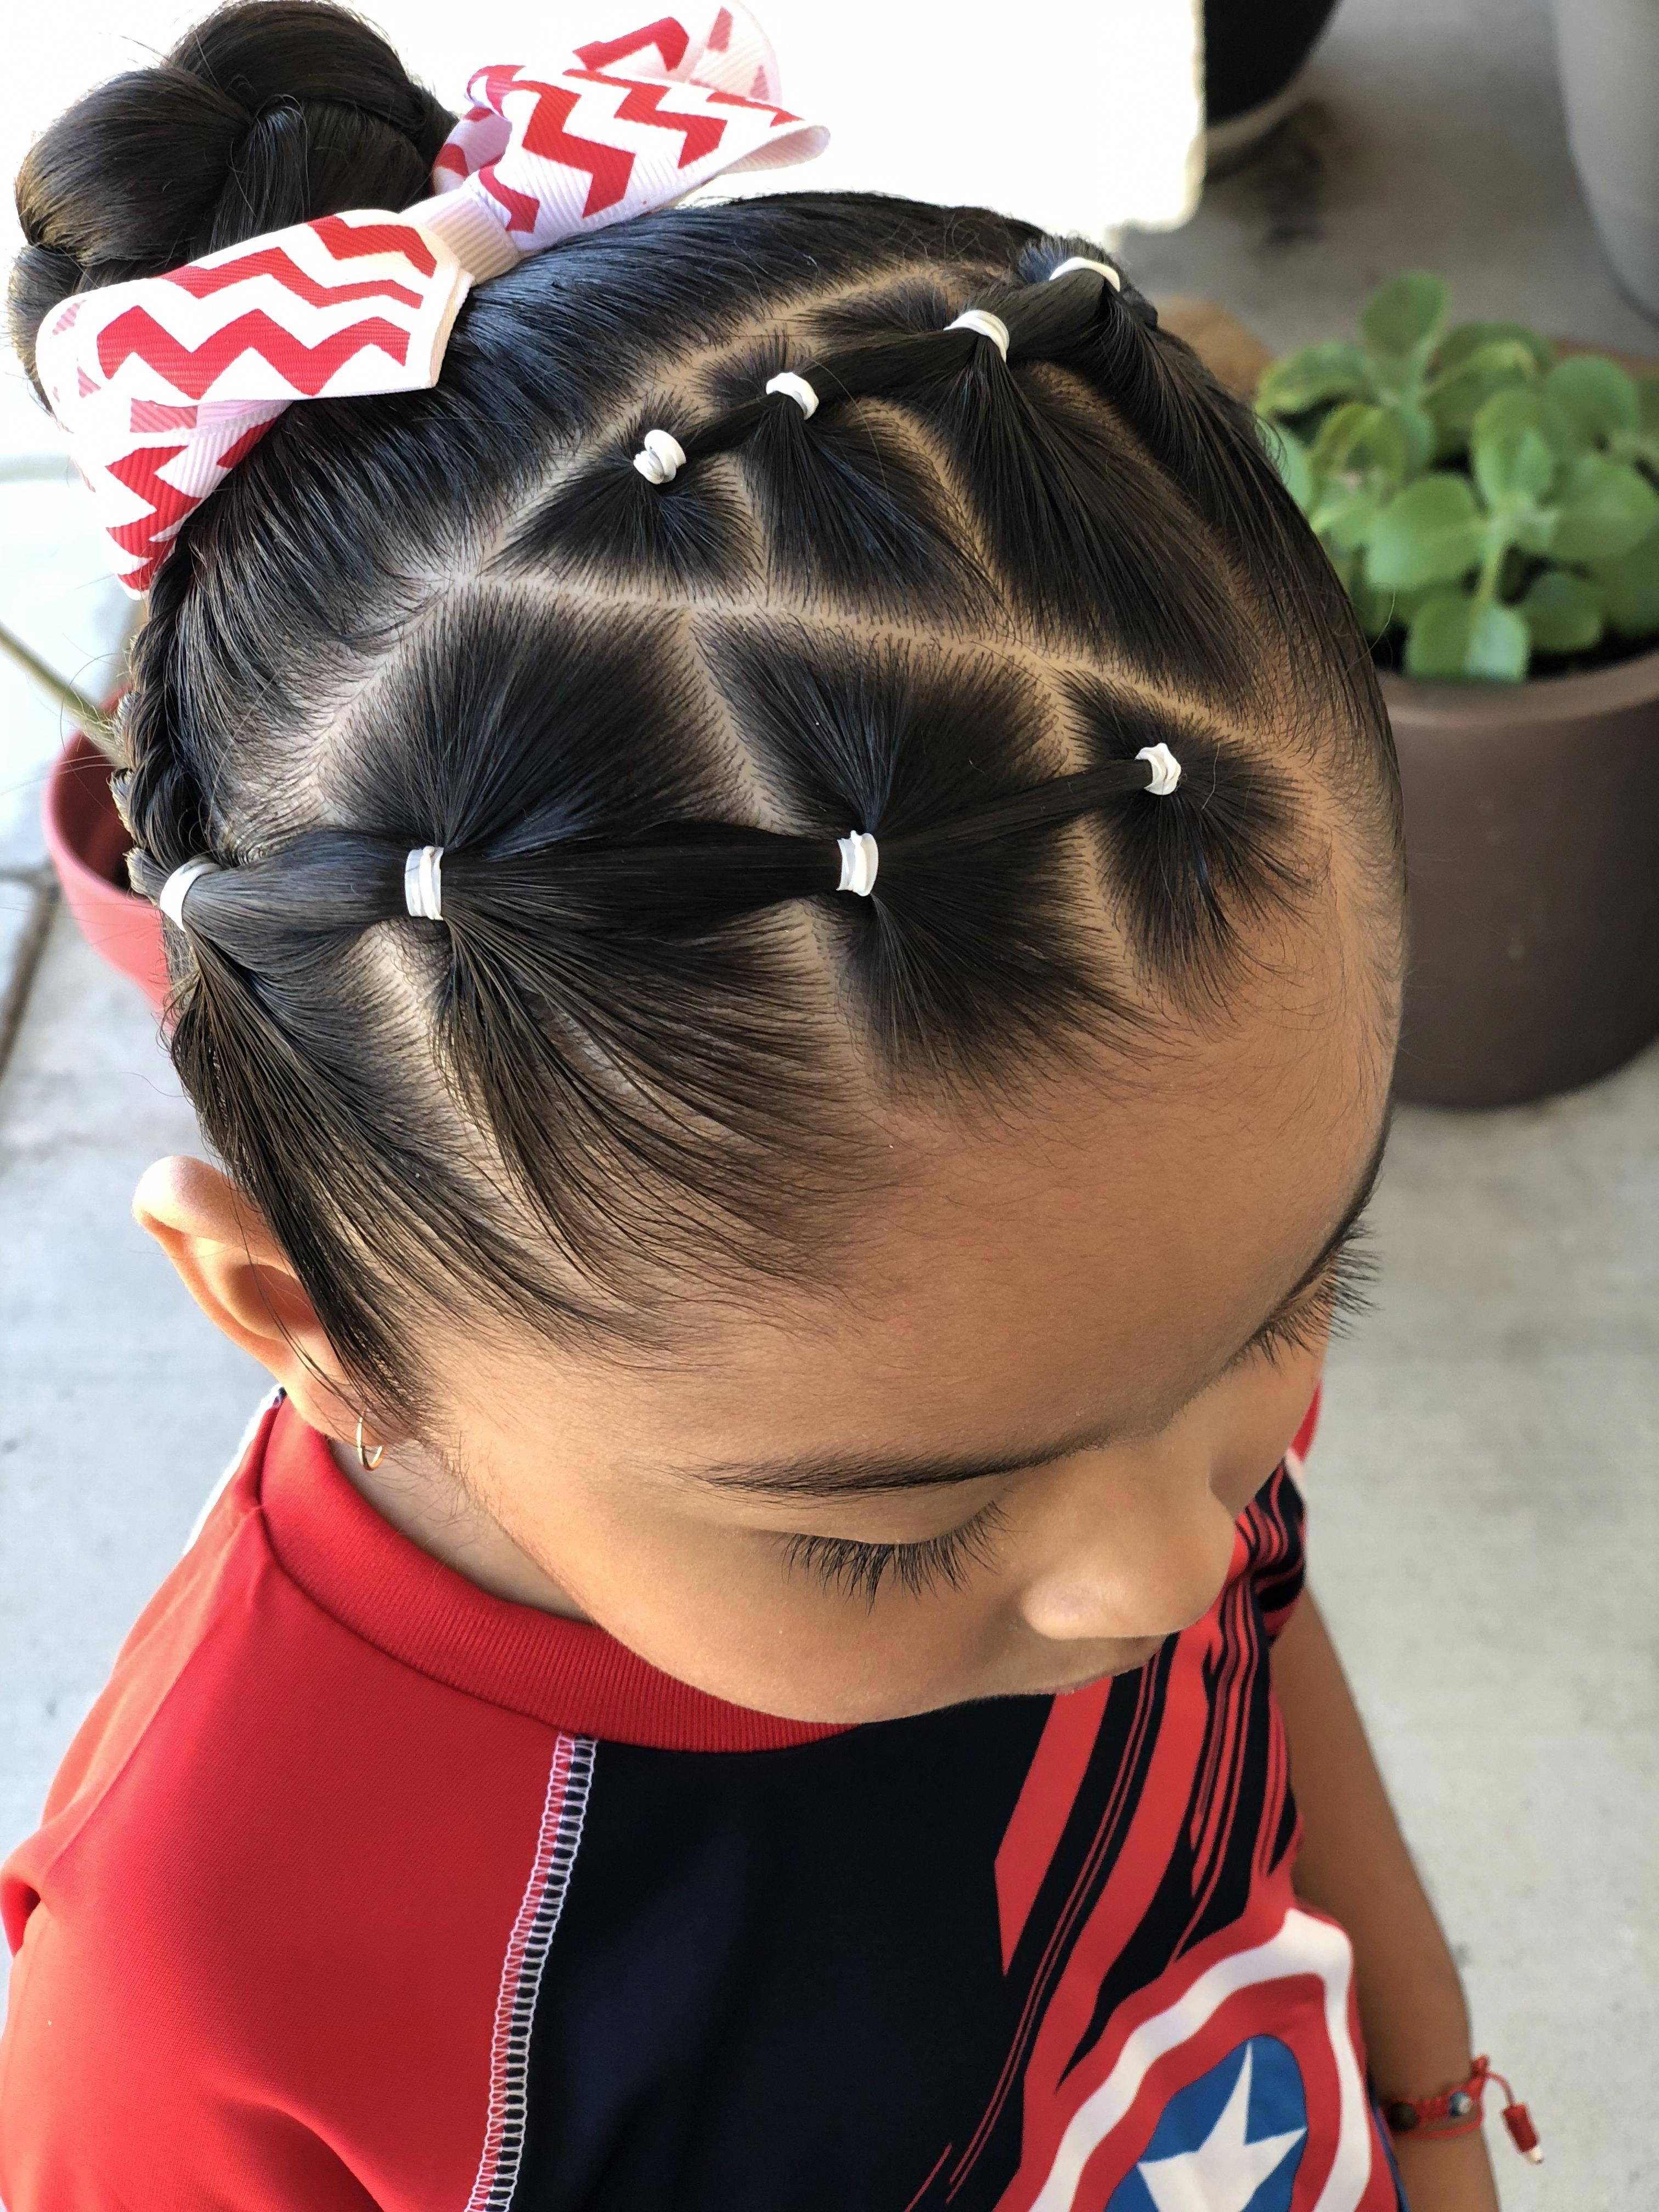 Short Funky Hairstyles Hair Hairstyles For Short Hair Baby Girl Hairstyle Pics 20190525 Baby Hairstyles Girls Hairstyles Braids Kids Hairstyles